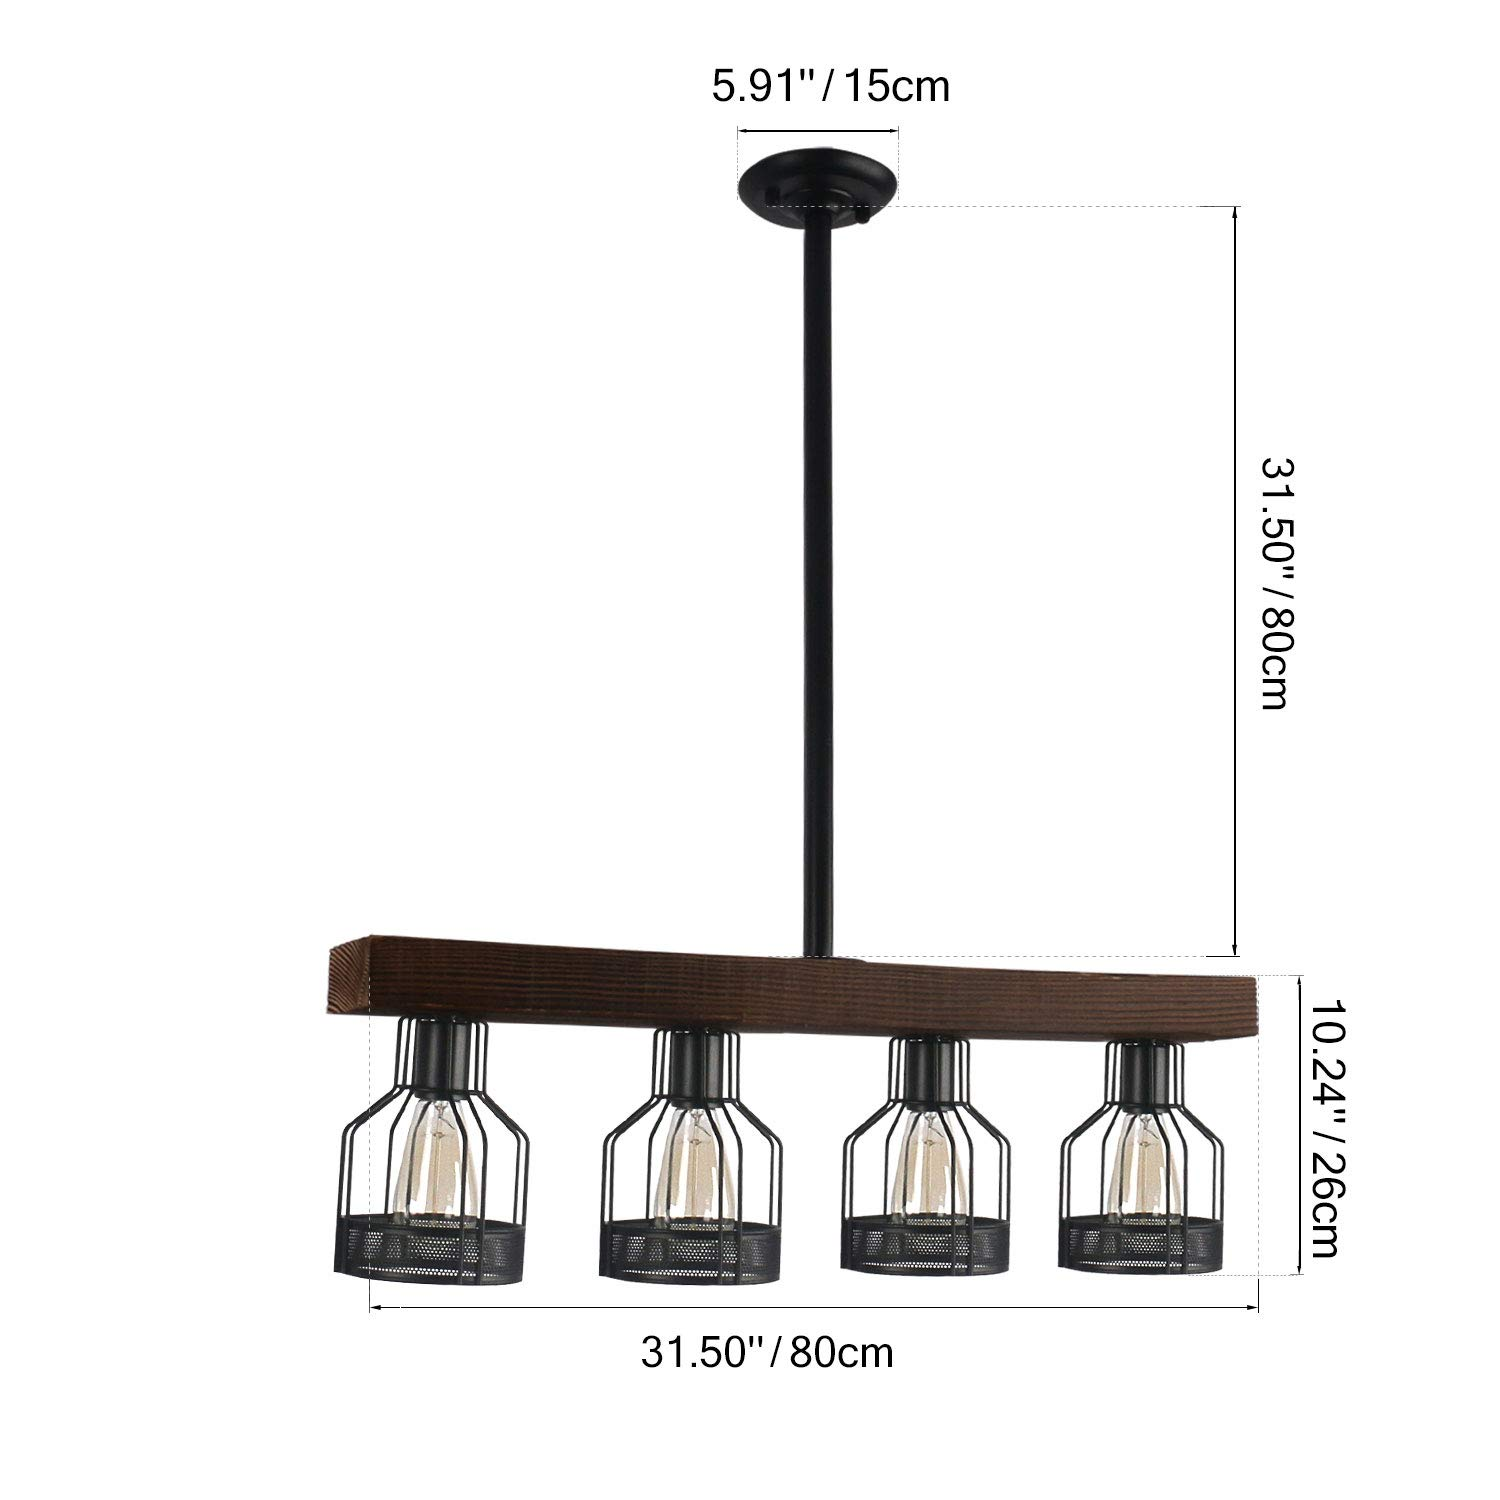 Unitary Brand Vintage Black Metal and Wood Body Cage Shade Kitchen Island Lighting with 4 E26 Bulb Sockets 240W Painted Finish by Unitary (Image #2)